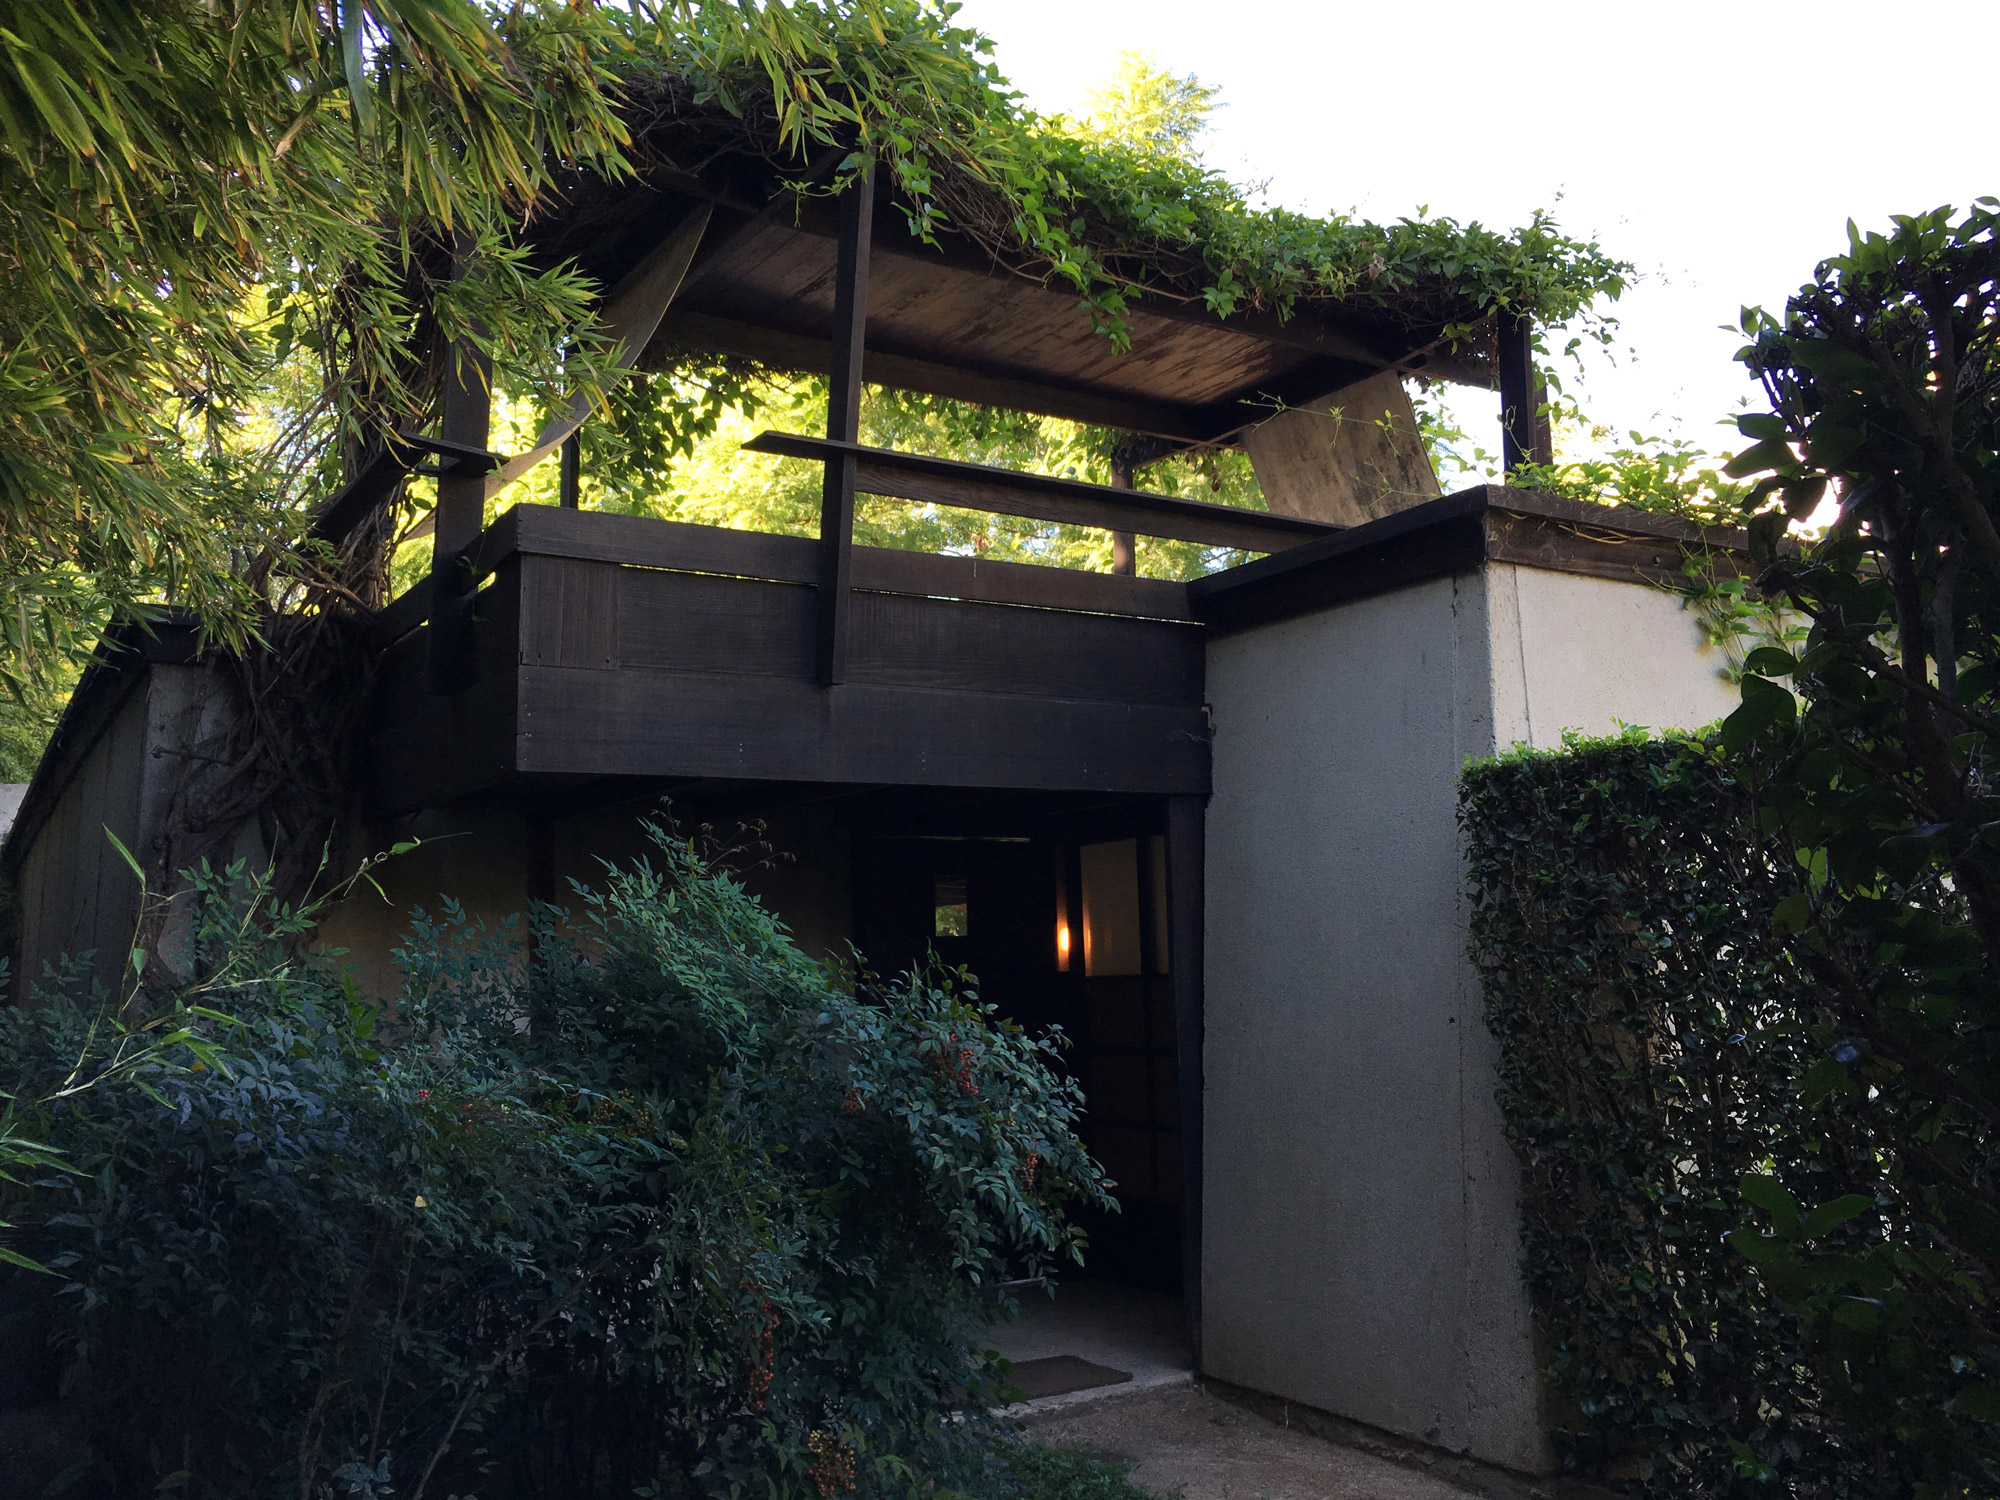 urbanbacklog-los-angeles-schindler-house-mac-center-4.jpg